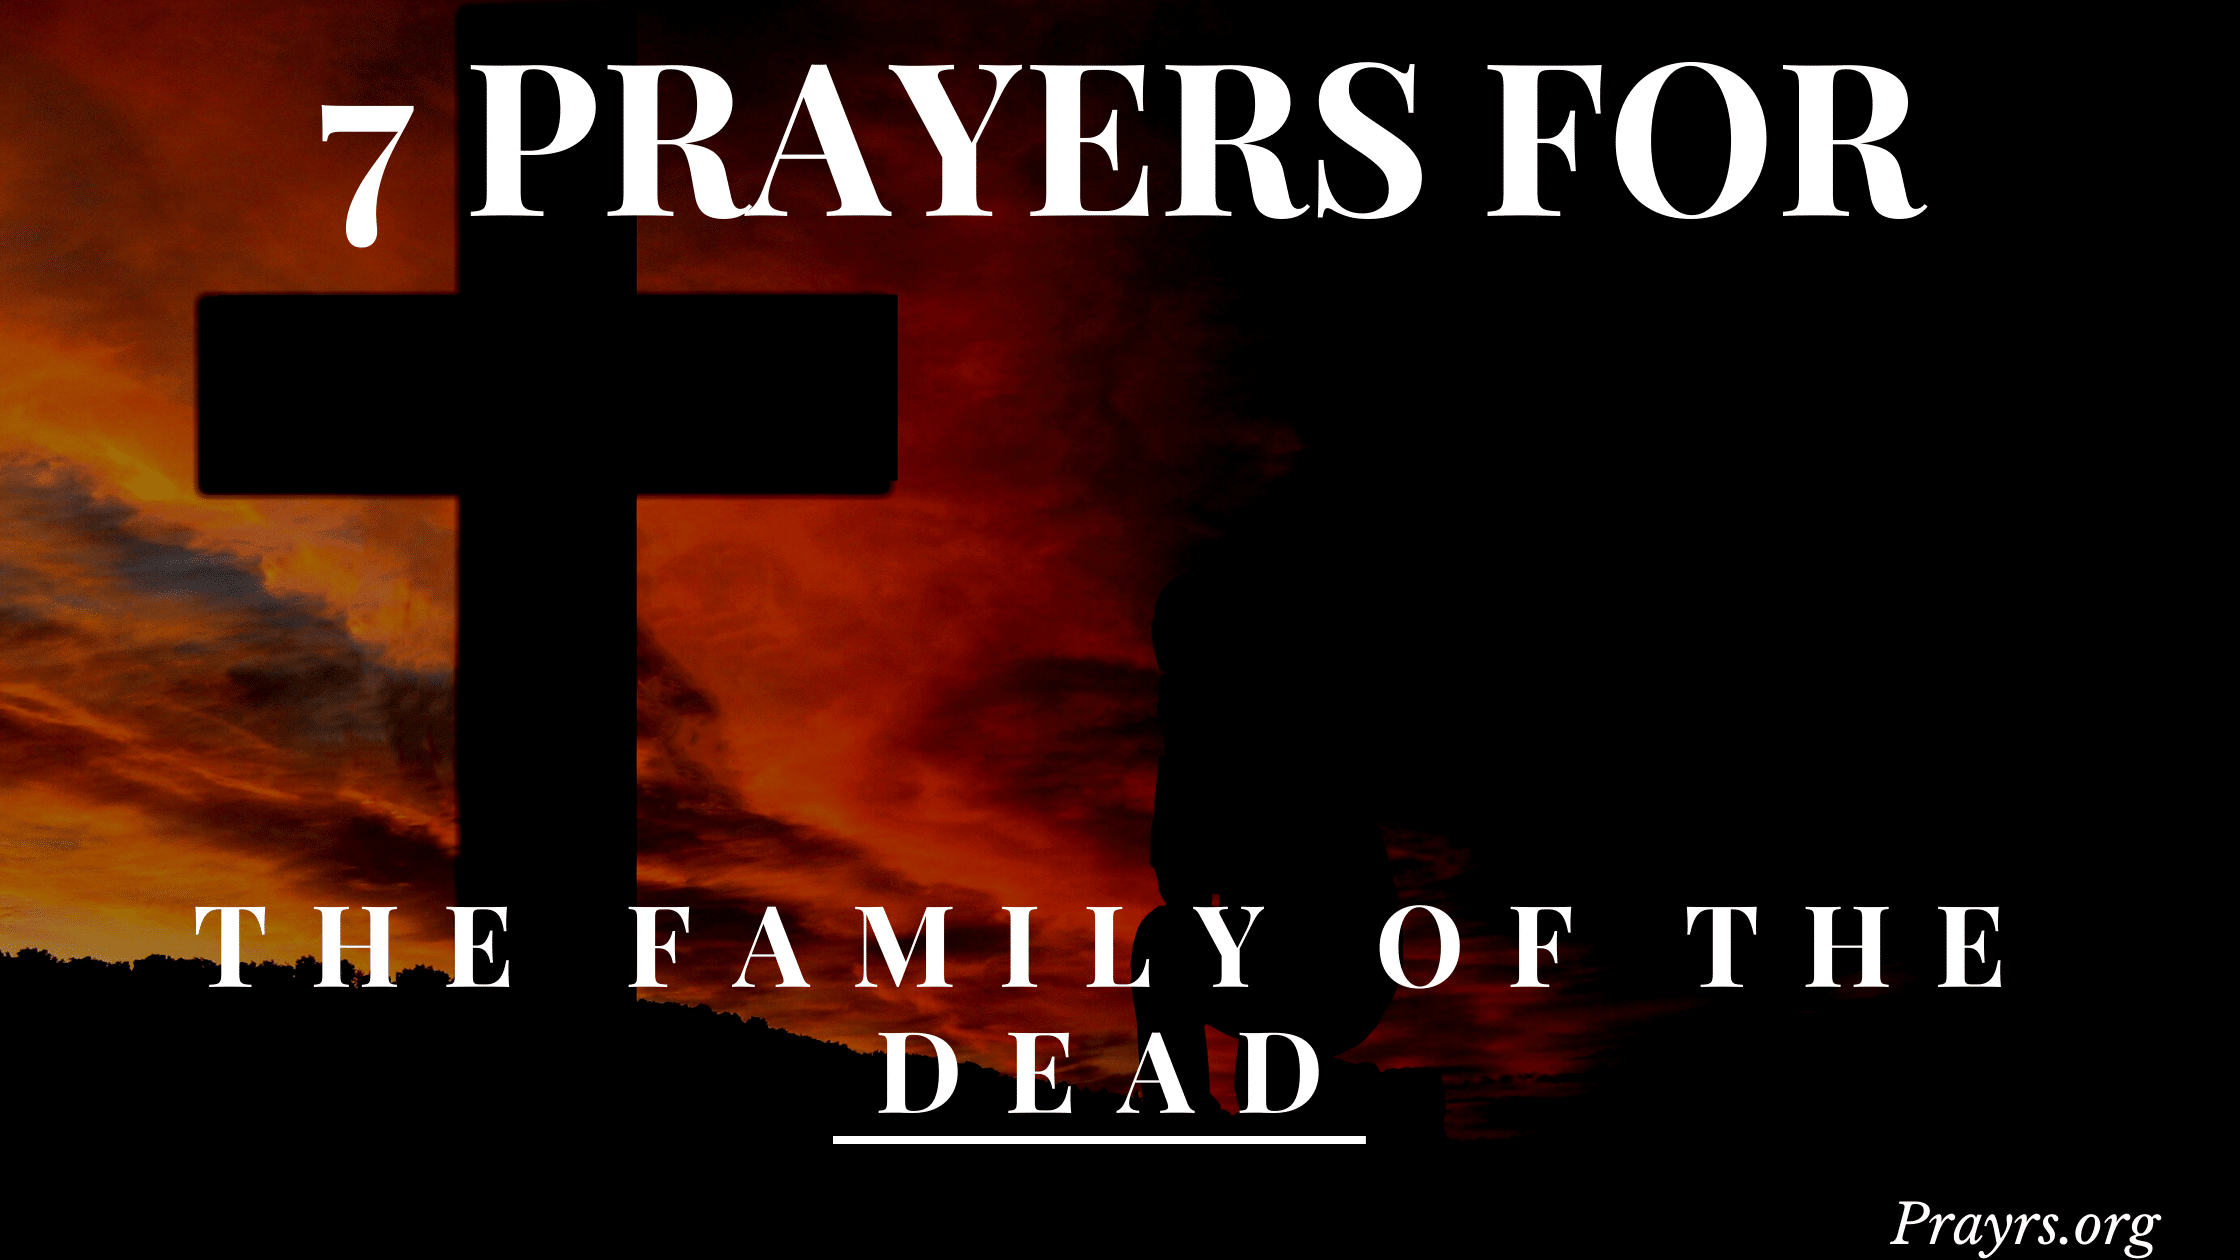 prayers for the family of the dead